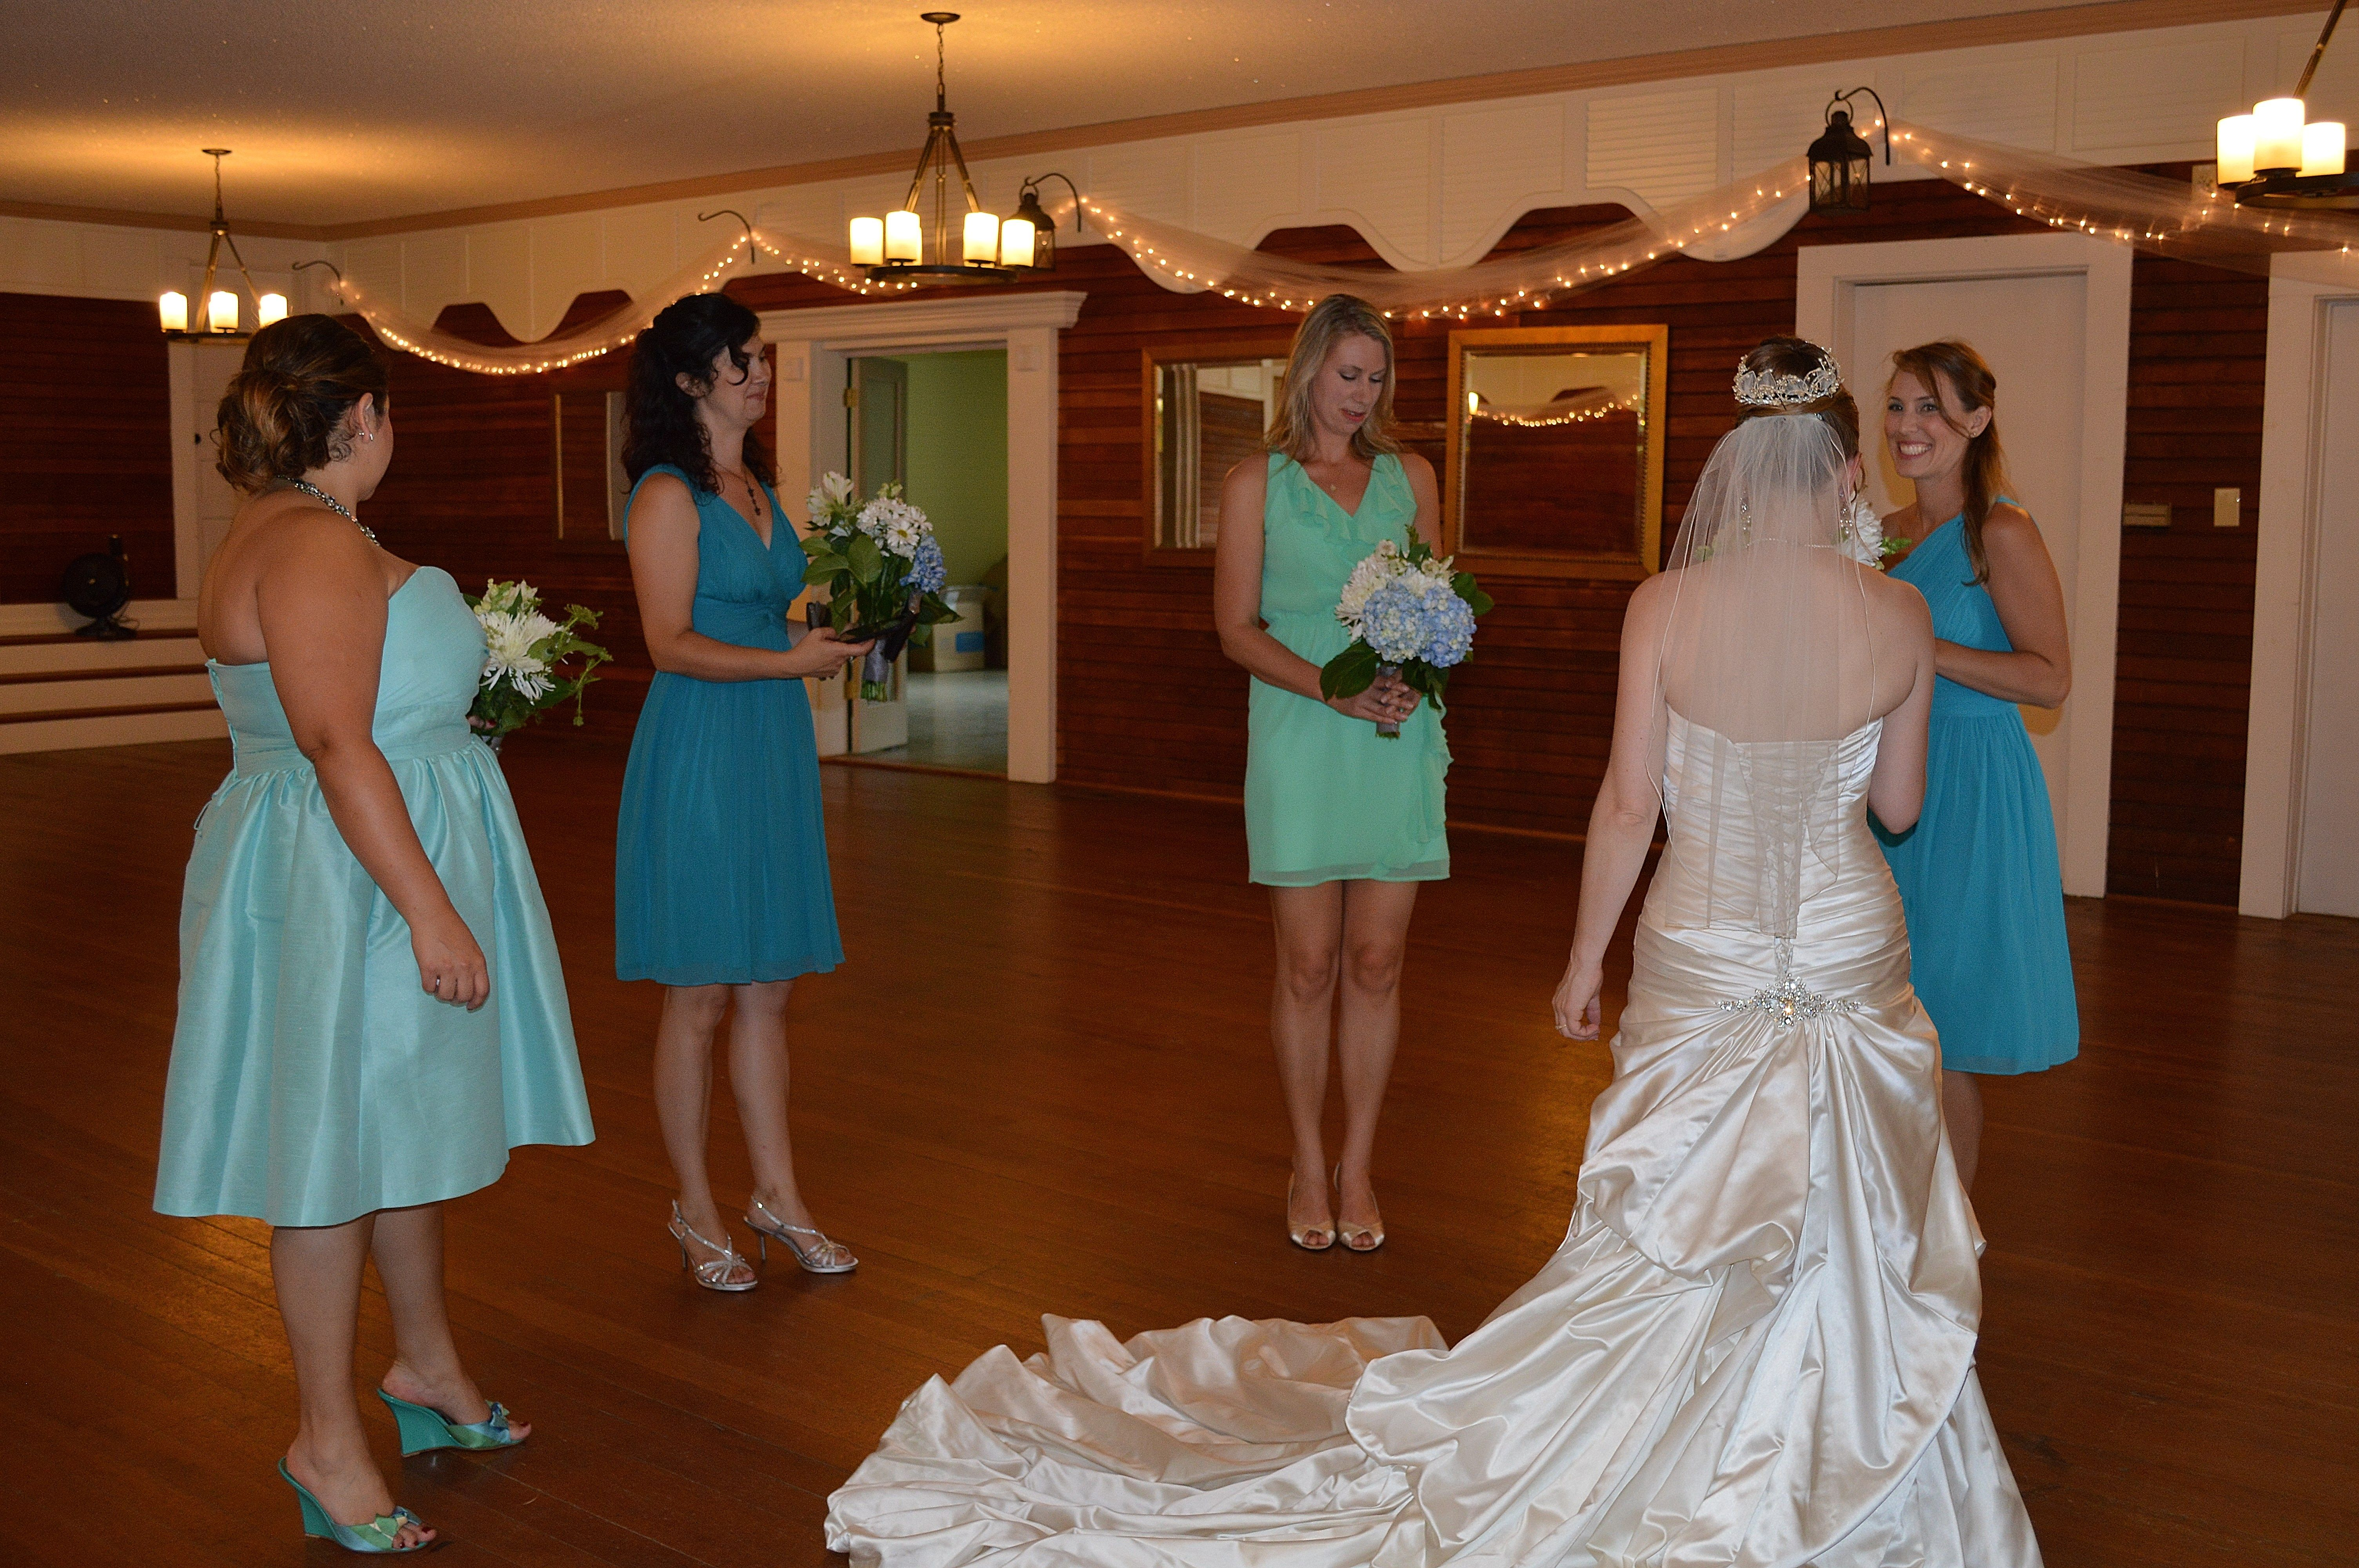 During Outdoor Weddings Its A Great Staging Area